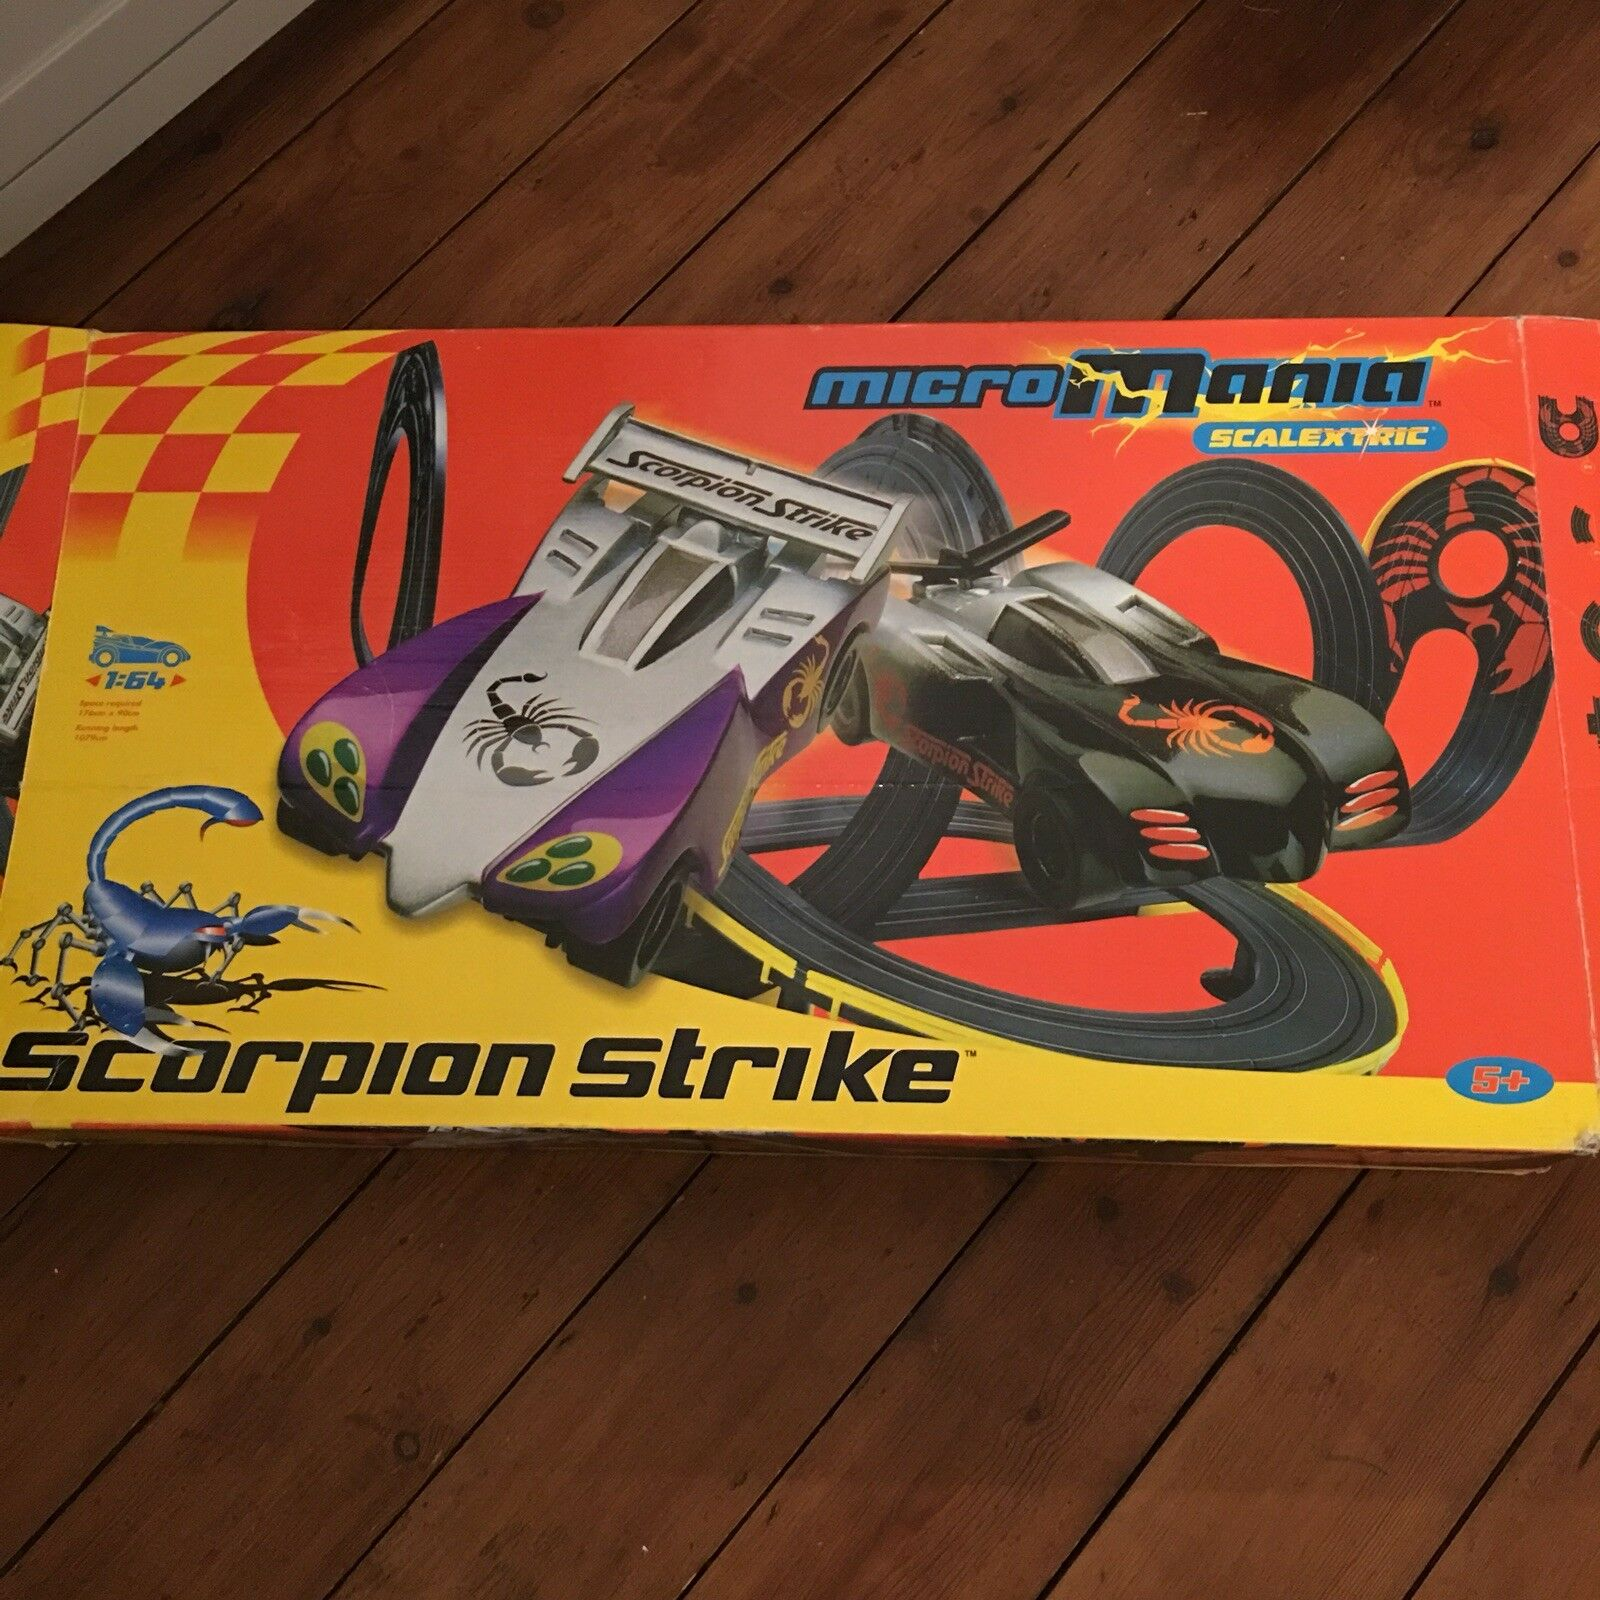 Micro Mania Scalextric Scorpion Strike Set Toy Scalextric Set